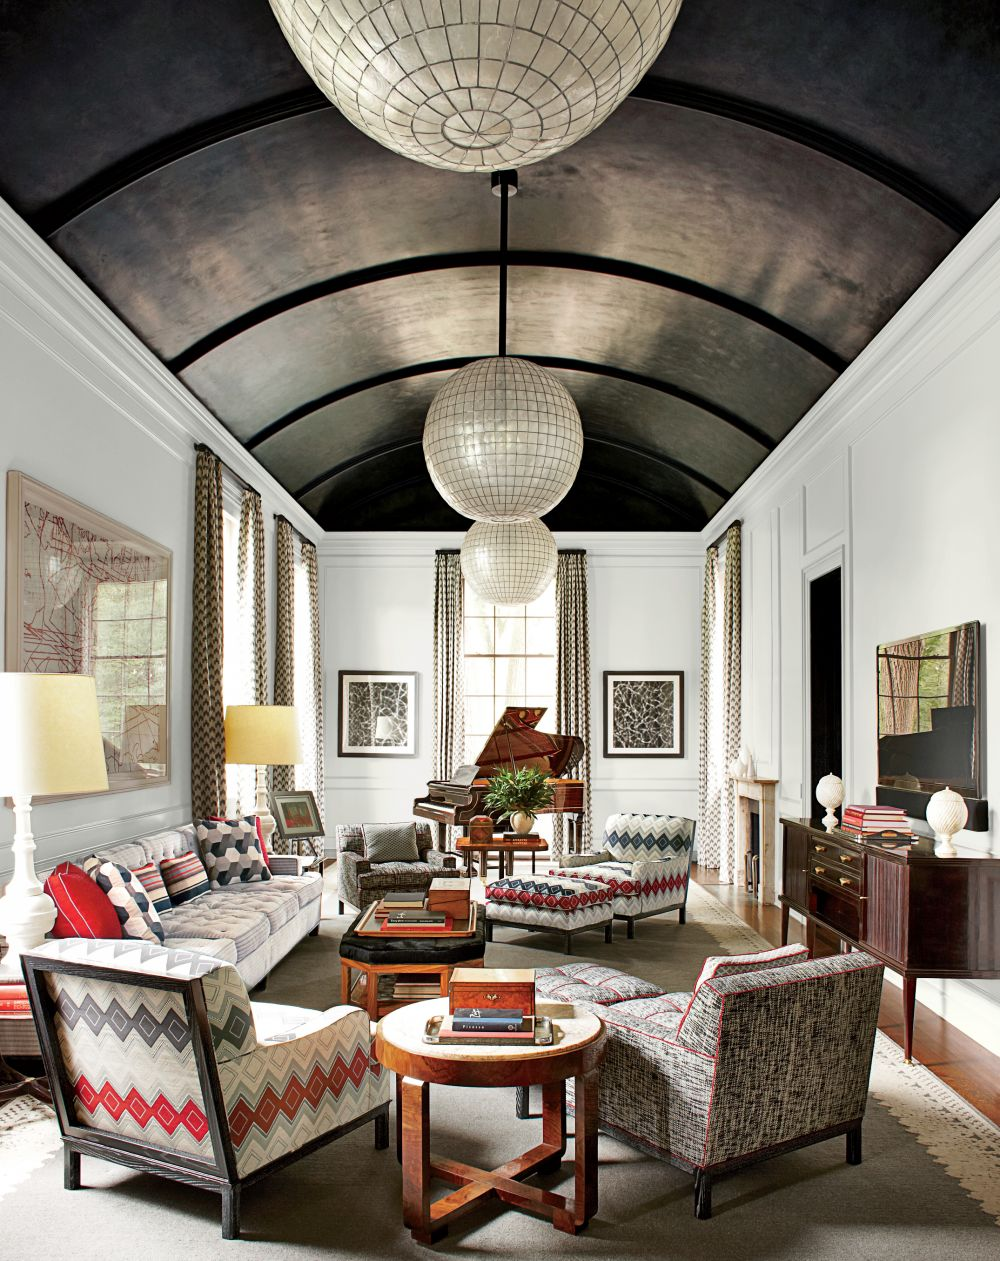 Photo Source Architectural Digest